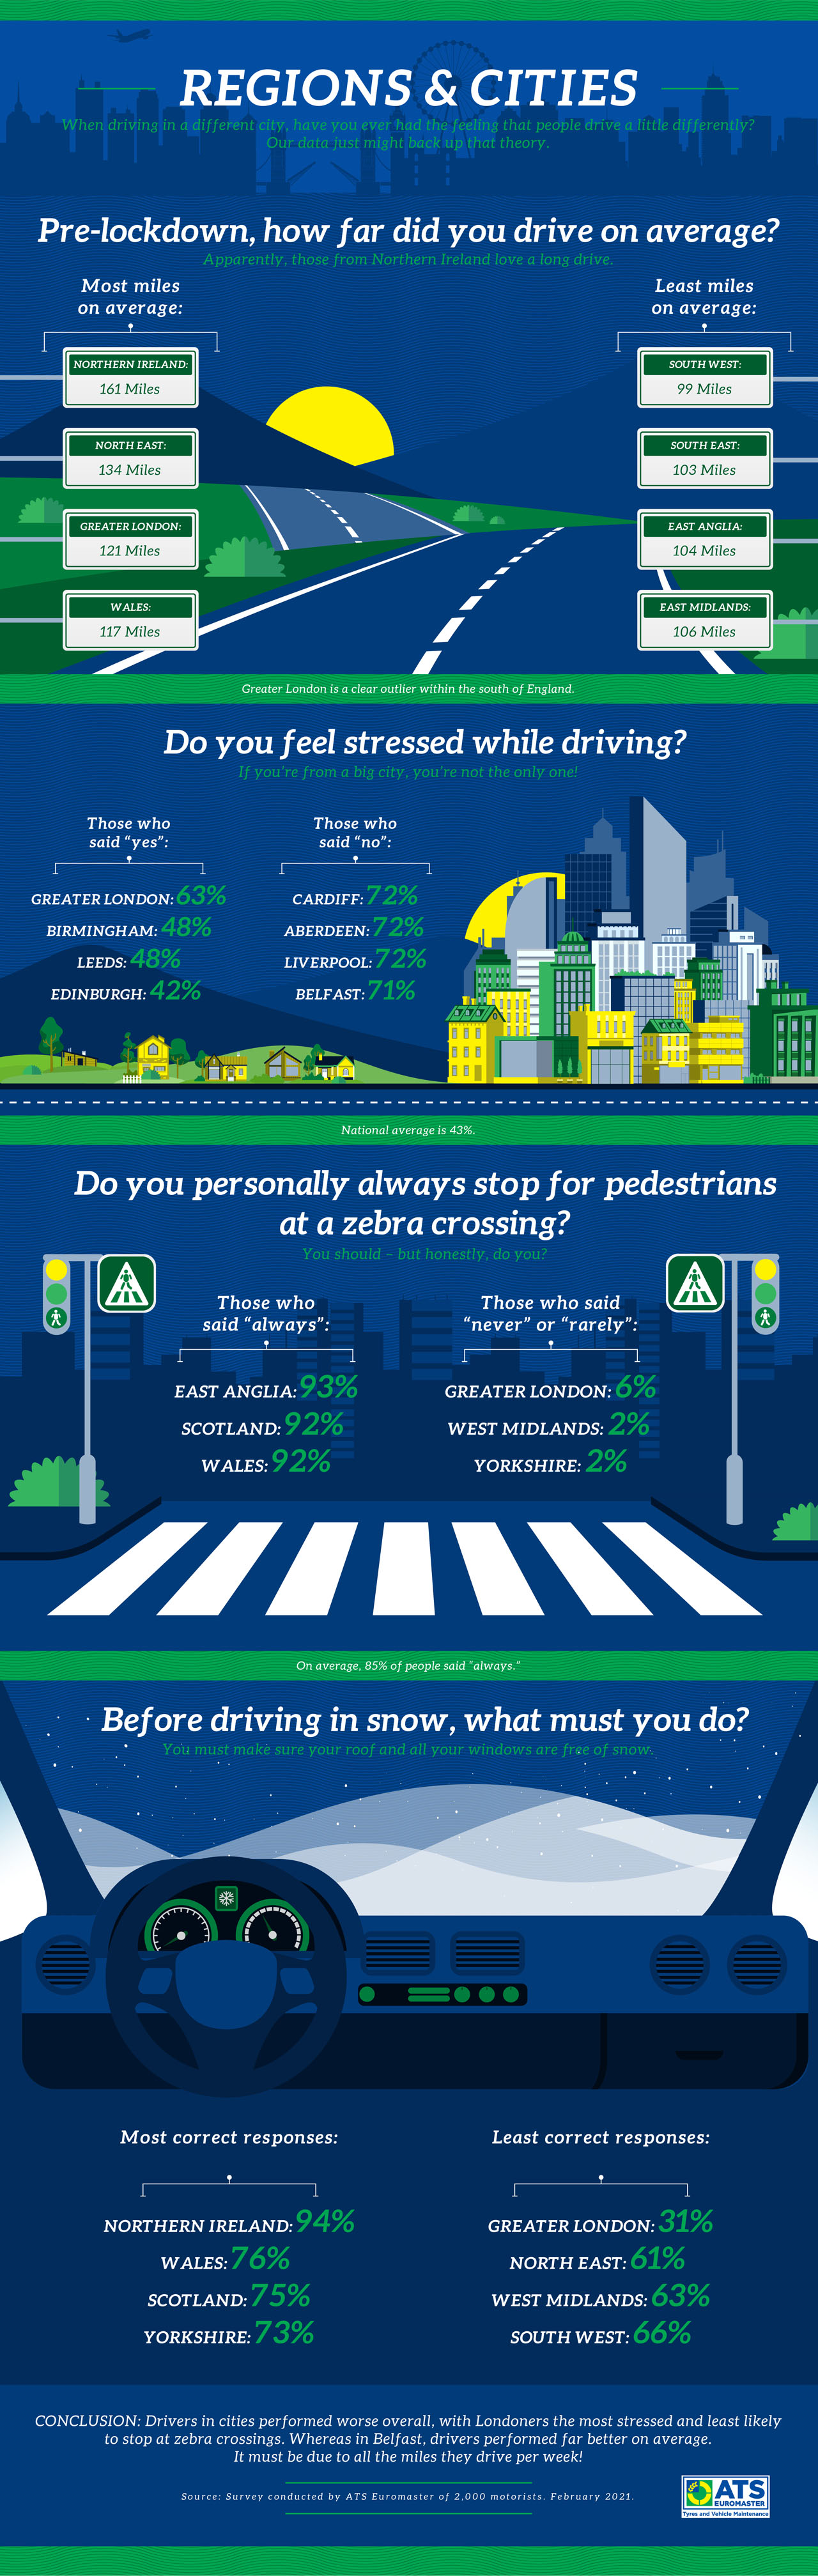 Driving etiquette: Regions and cities image